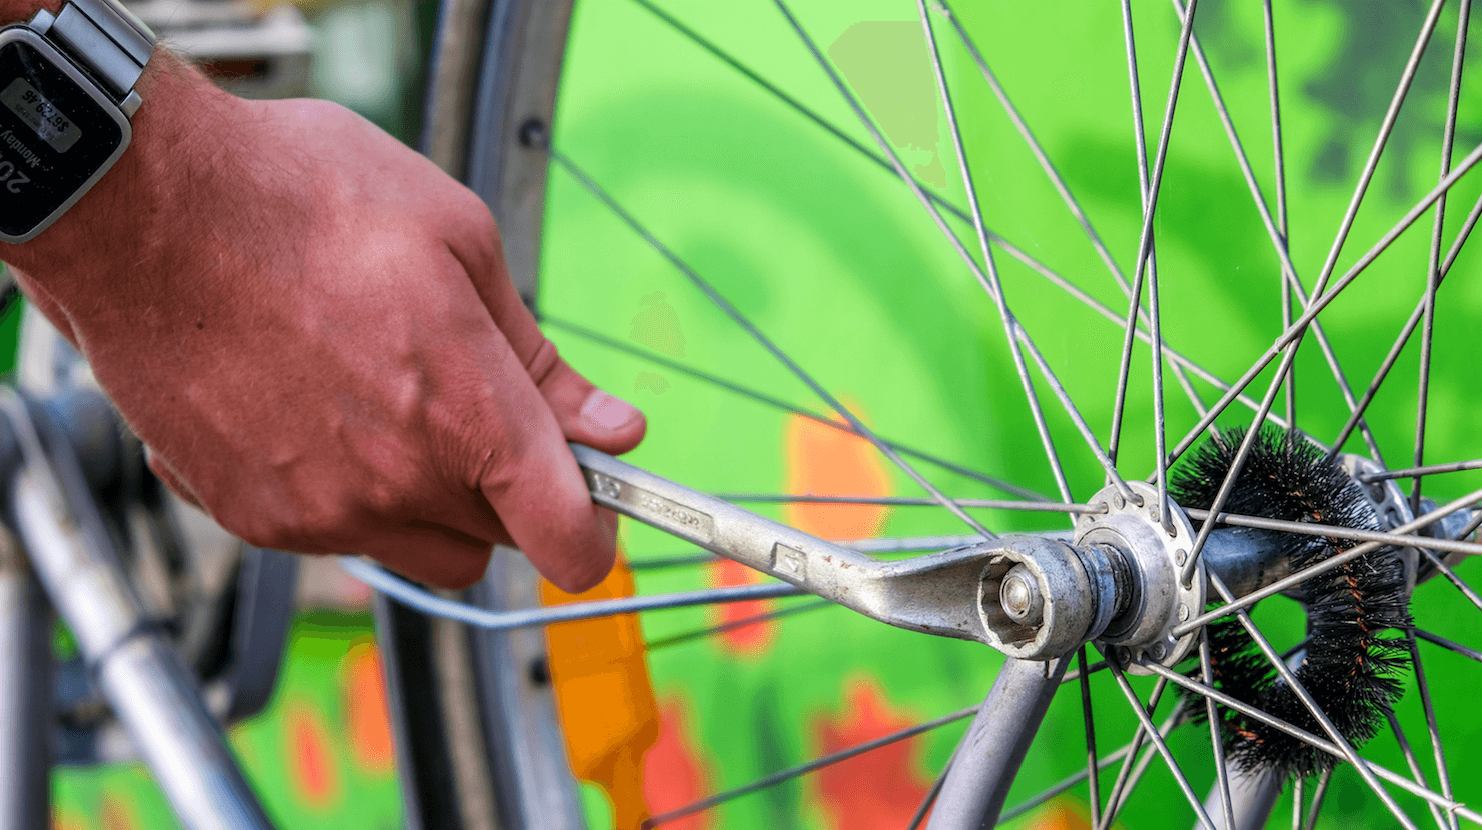 5 Most Important Bike Parts to Maintain and What to Look for